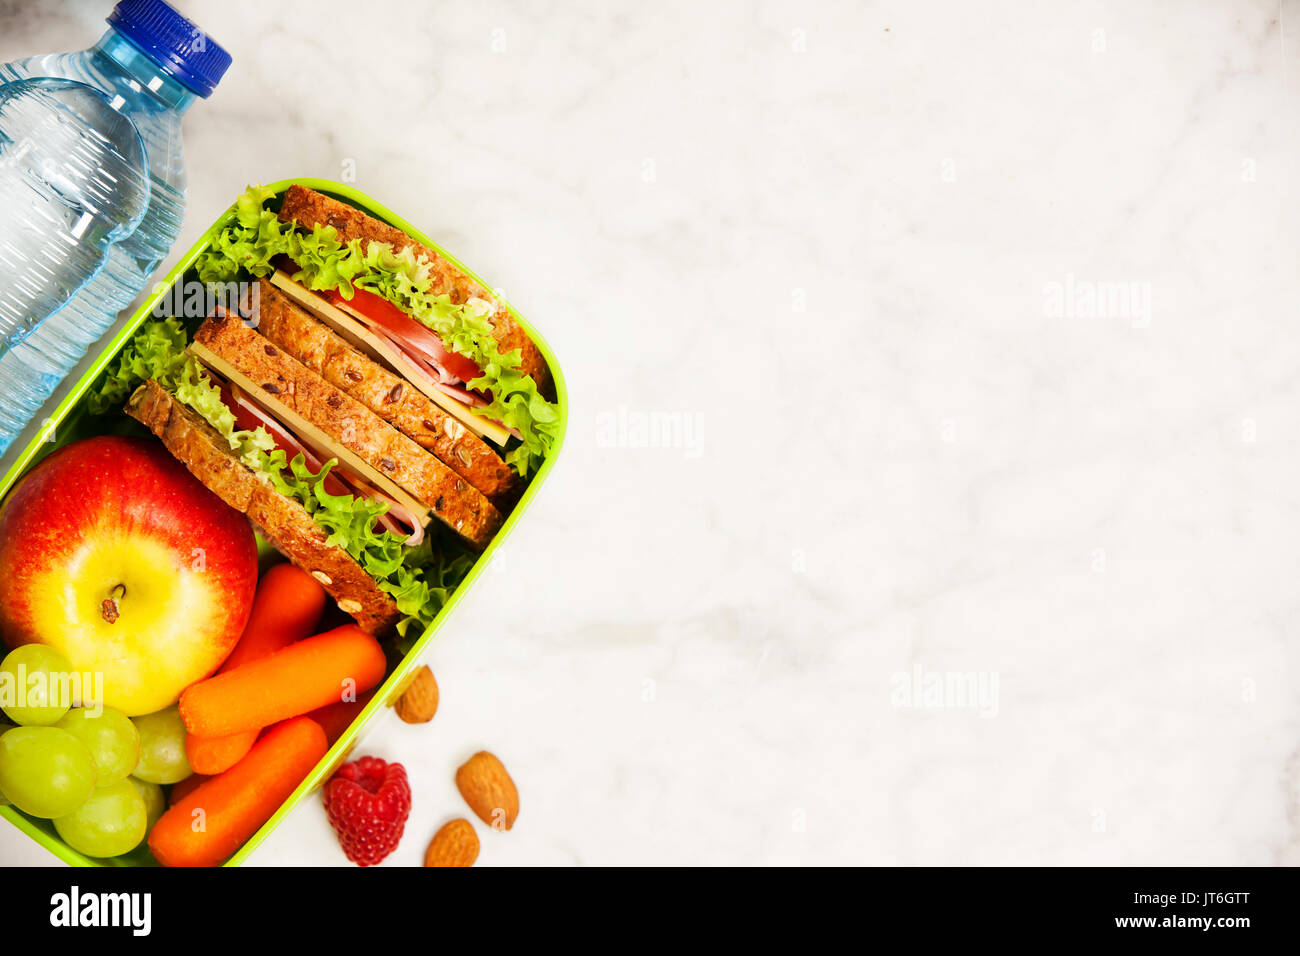 Healthy School Lunch Box With Sandwich Apple Grape Carrot And Stock Photo Alamy